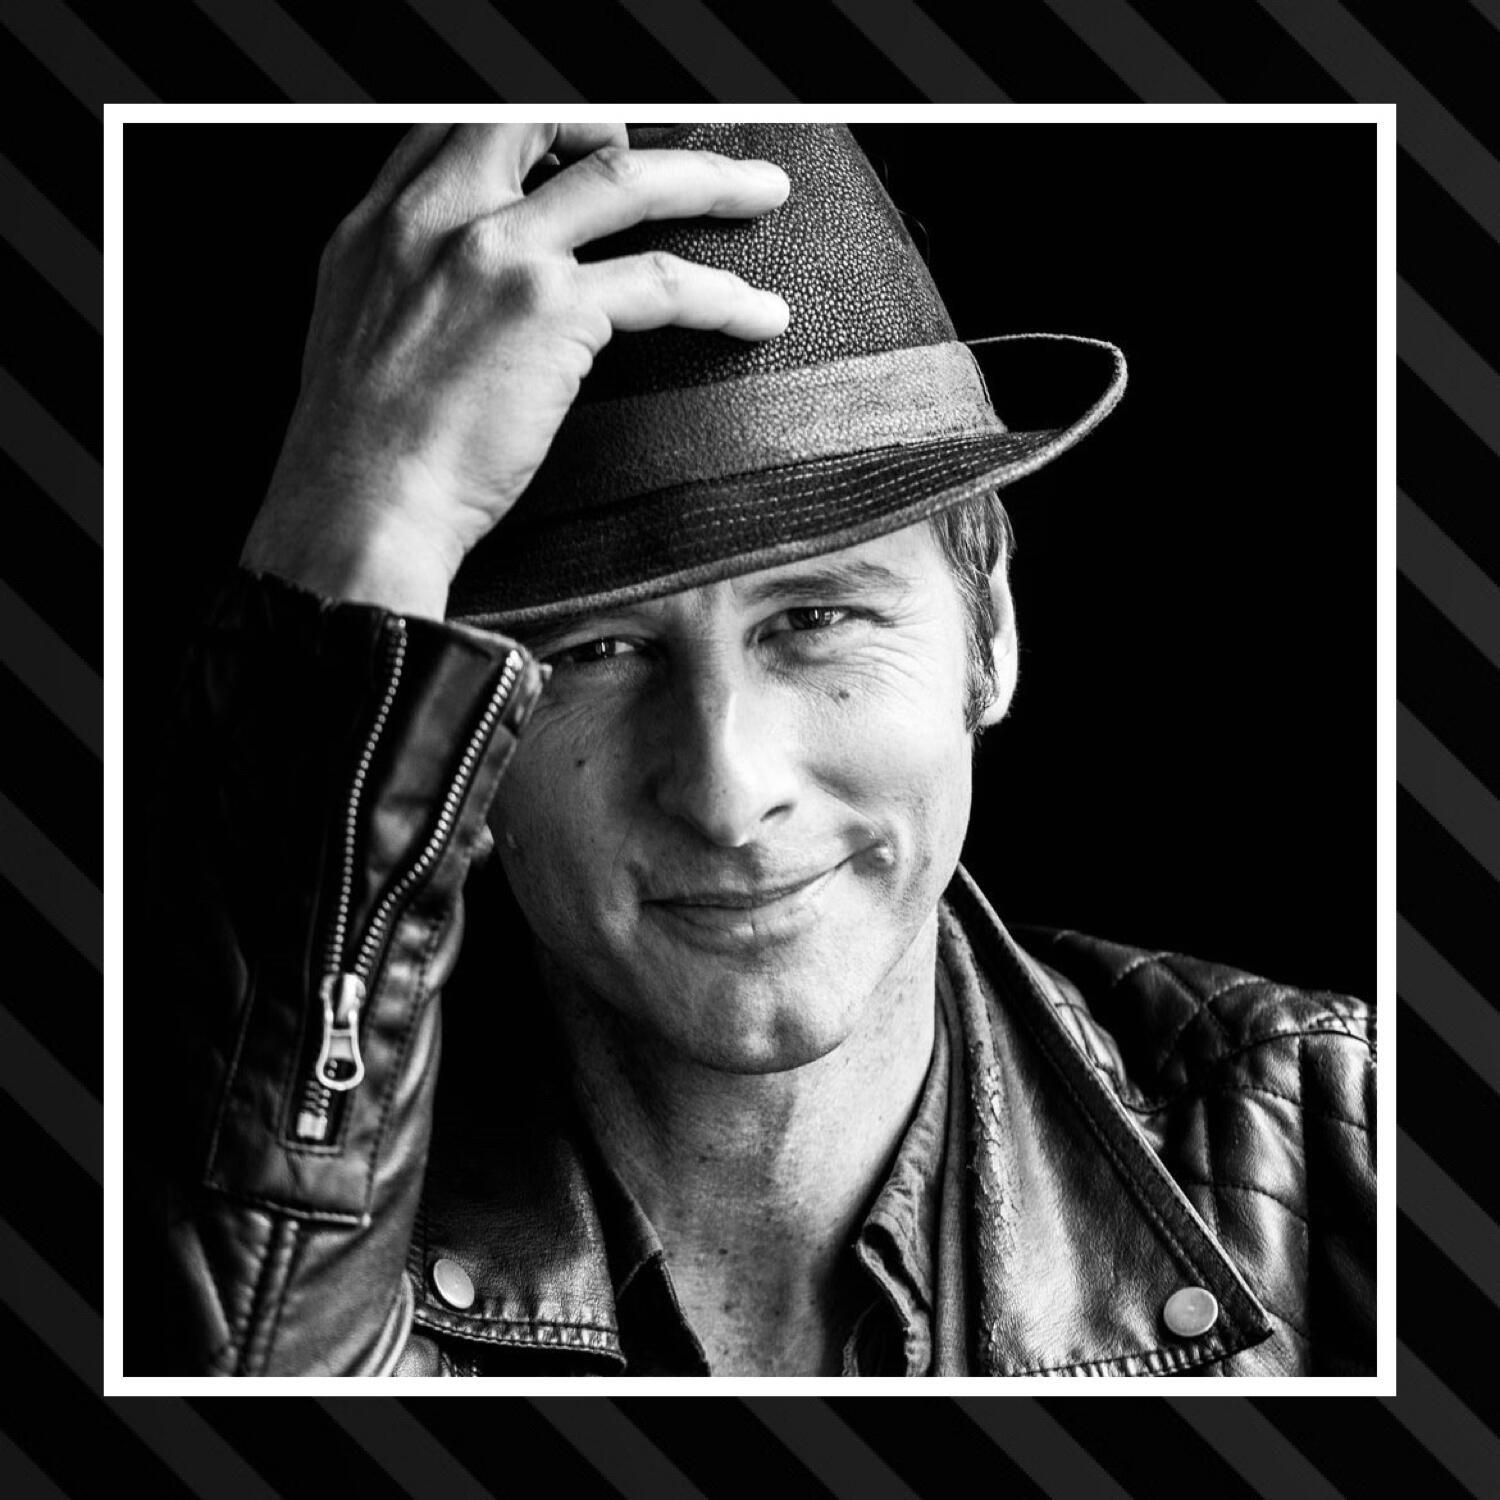 56: The one with Chesney Hawkes Image